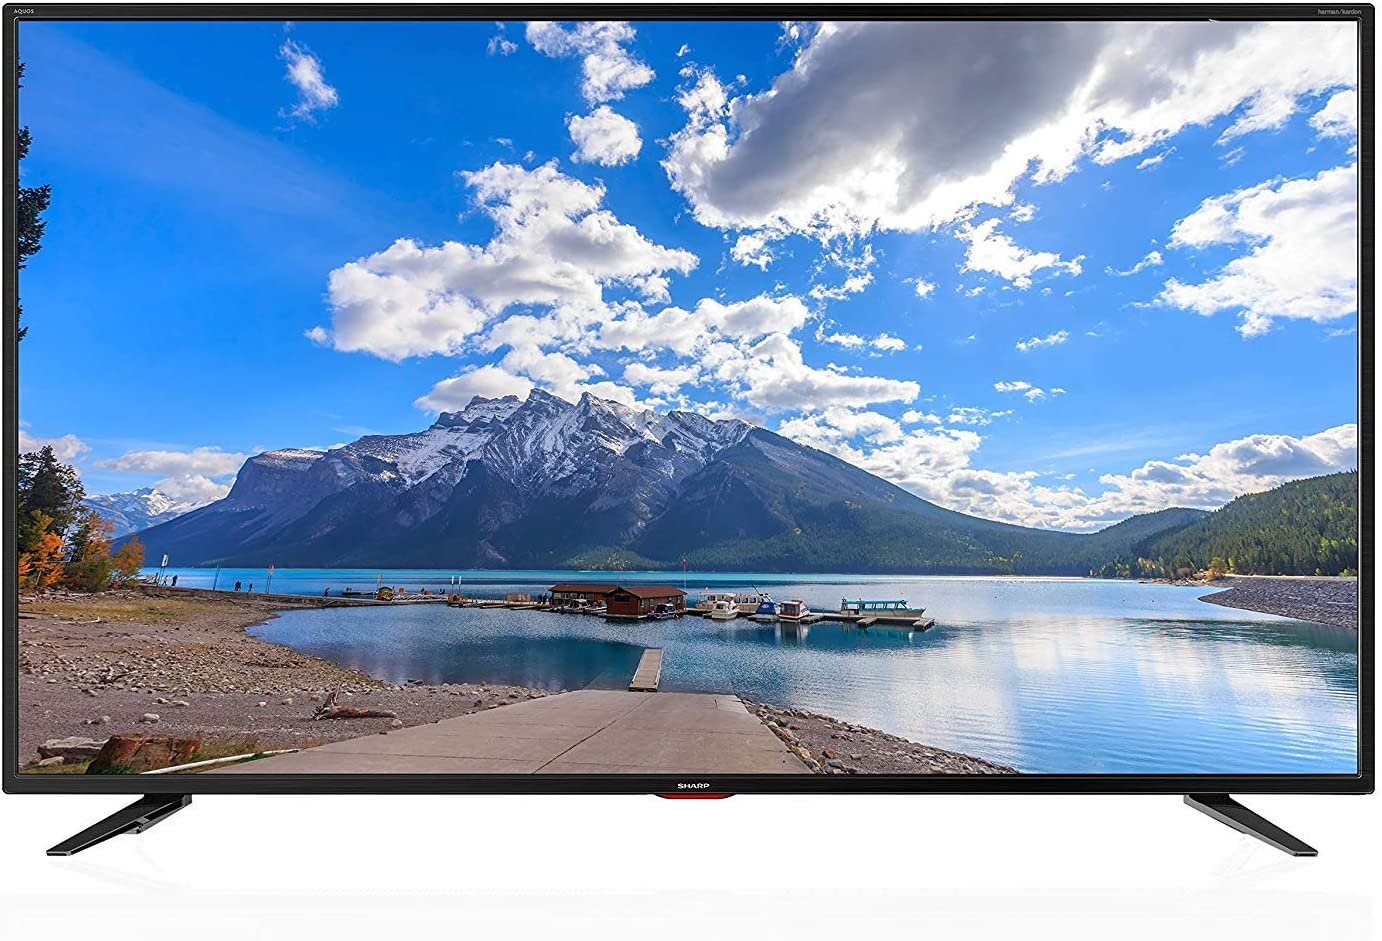 Sharp 4 K Ultra HD Smart LED TV, 164 cm (65 Pulgadas), Harman/Kardon Sistema de Sonido, LC de 65ui7552e, Negro: Amazon.es: Electrónica